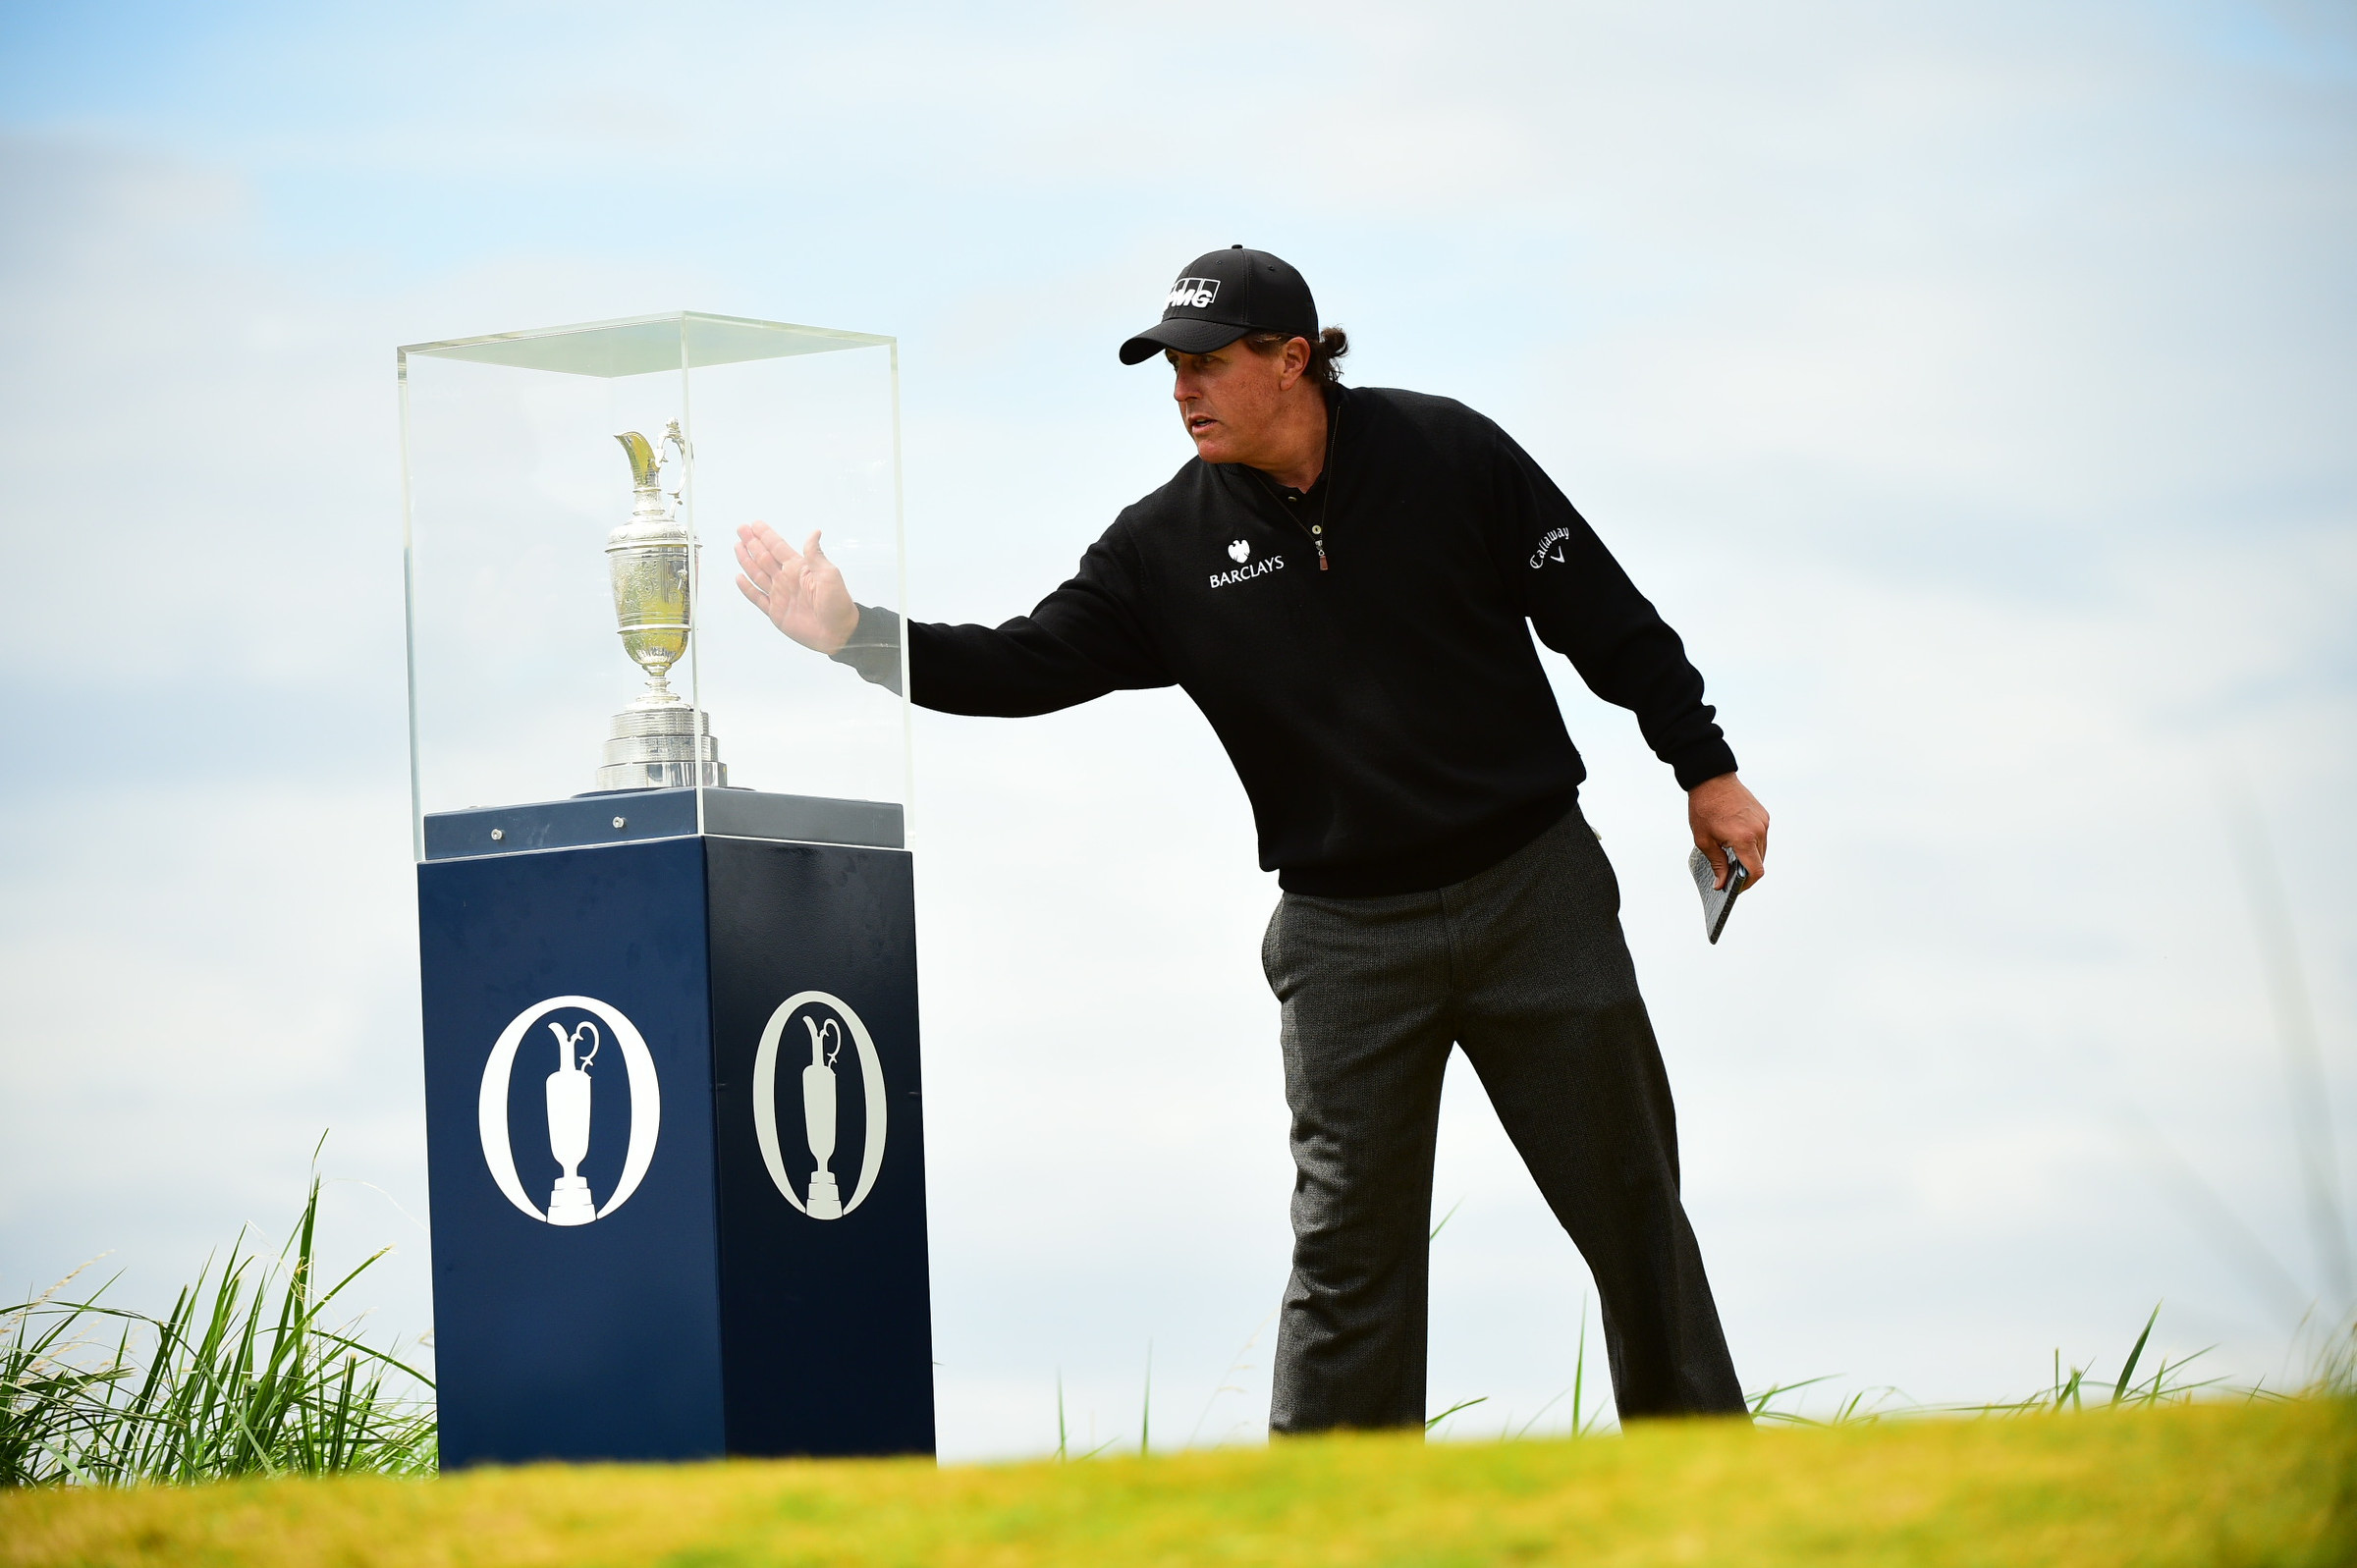 Phil Mickelson touched the glass around the claret jug prior to his Sunday round, but Henrik Stenson had his hands on the trophy after 72 holes.